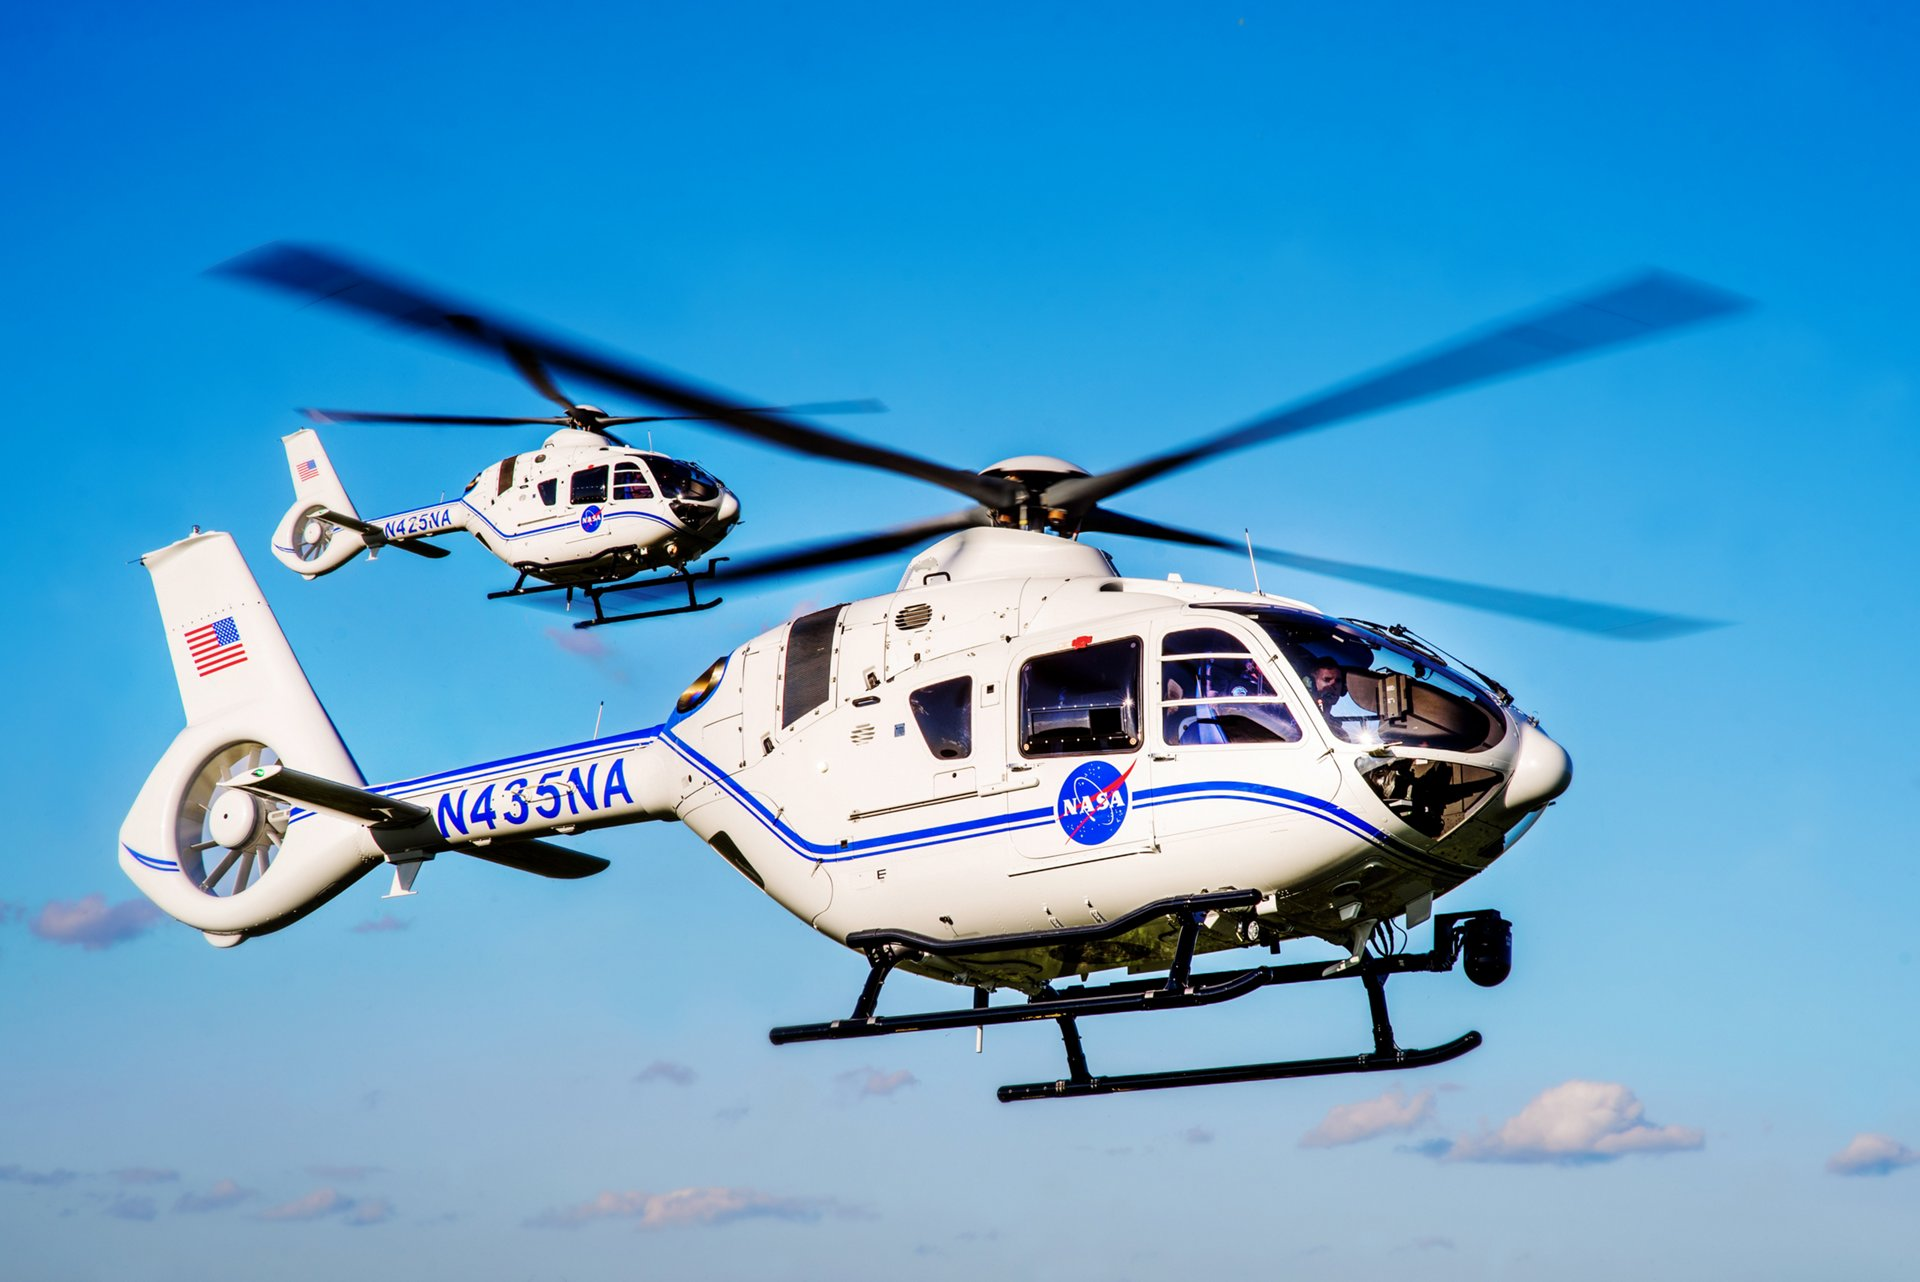 Airbus continues to expand its portfolio of products supporting the future of space exploration with the delivery of two new H135 helicopters to the National Aeronautics and Space Administration (NASA) from the Airbus Helicopters, Inc. production and completion facility in Columbus, Mississippi.